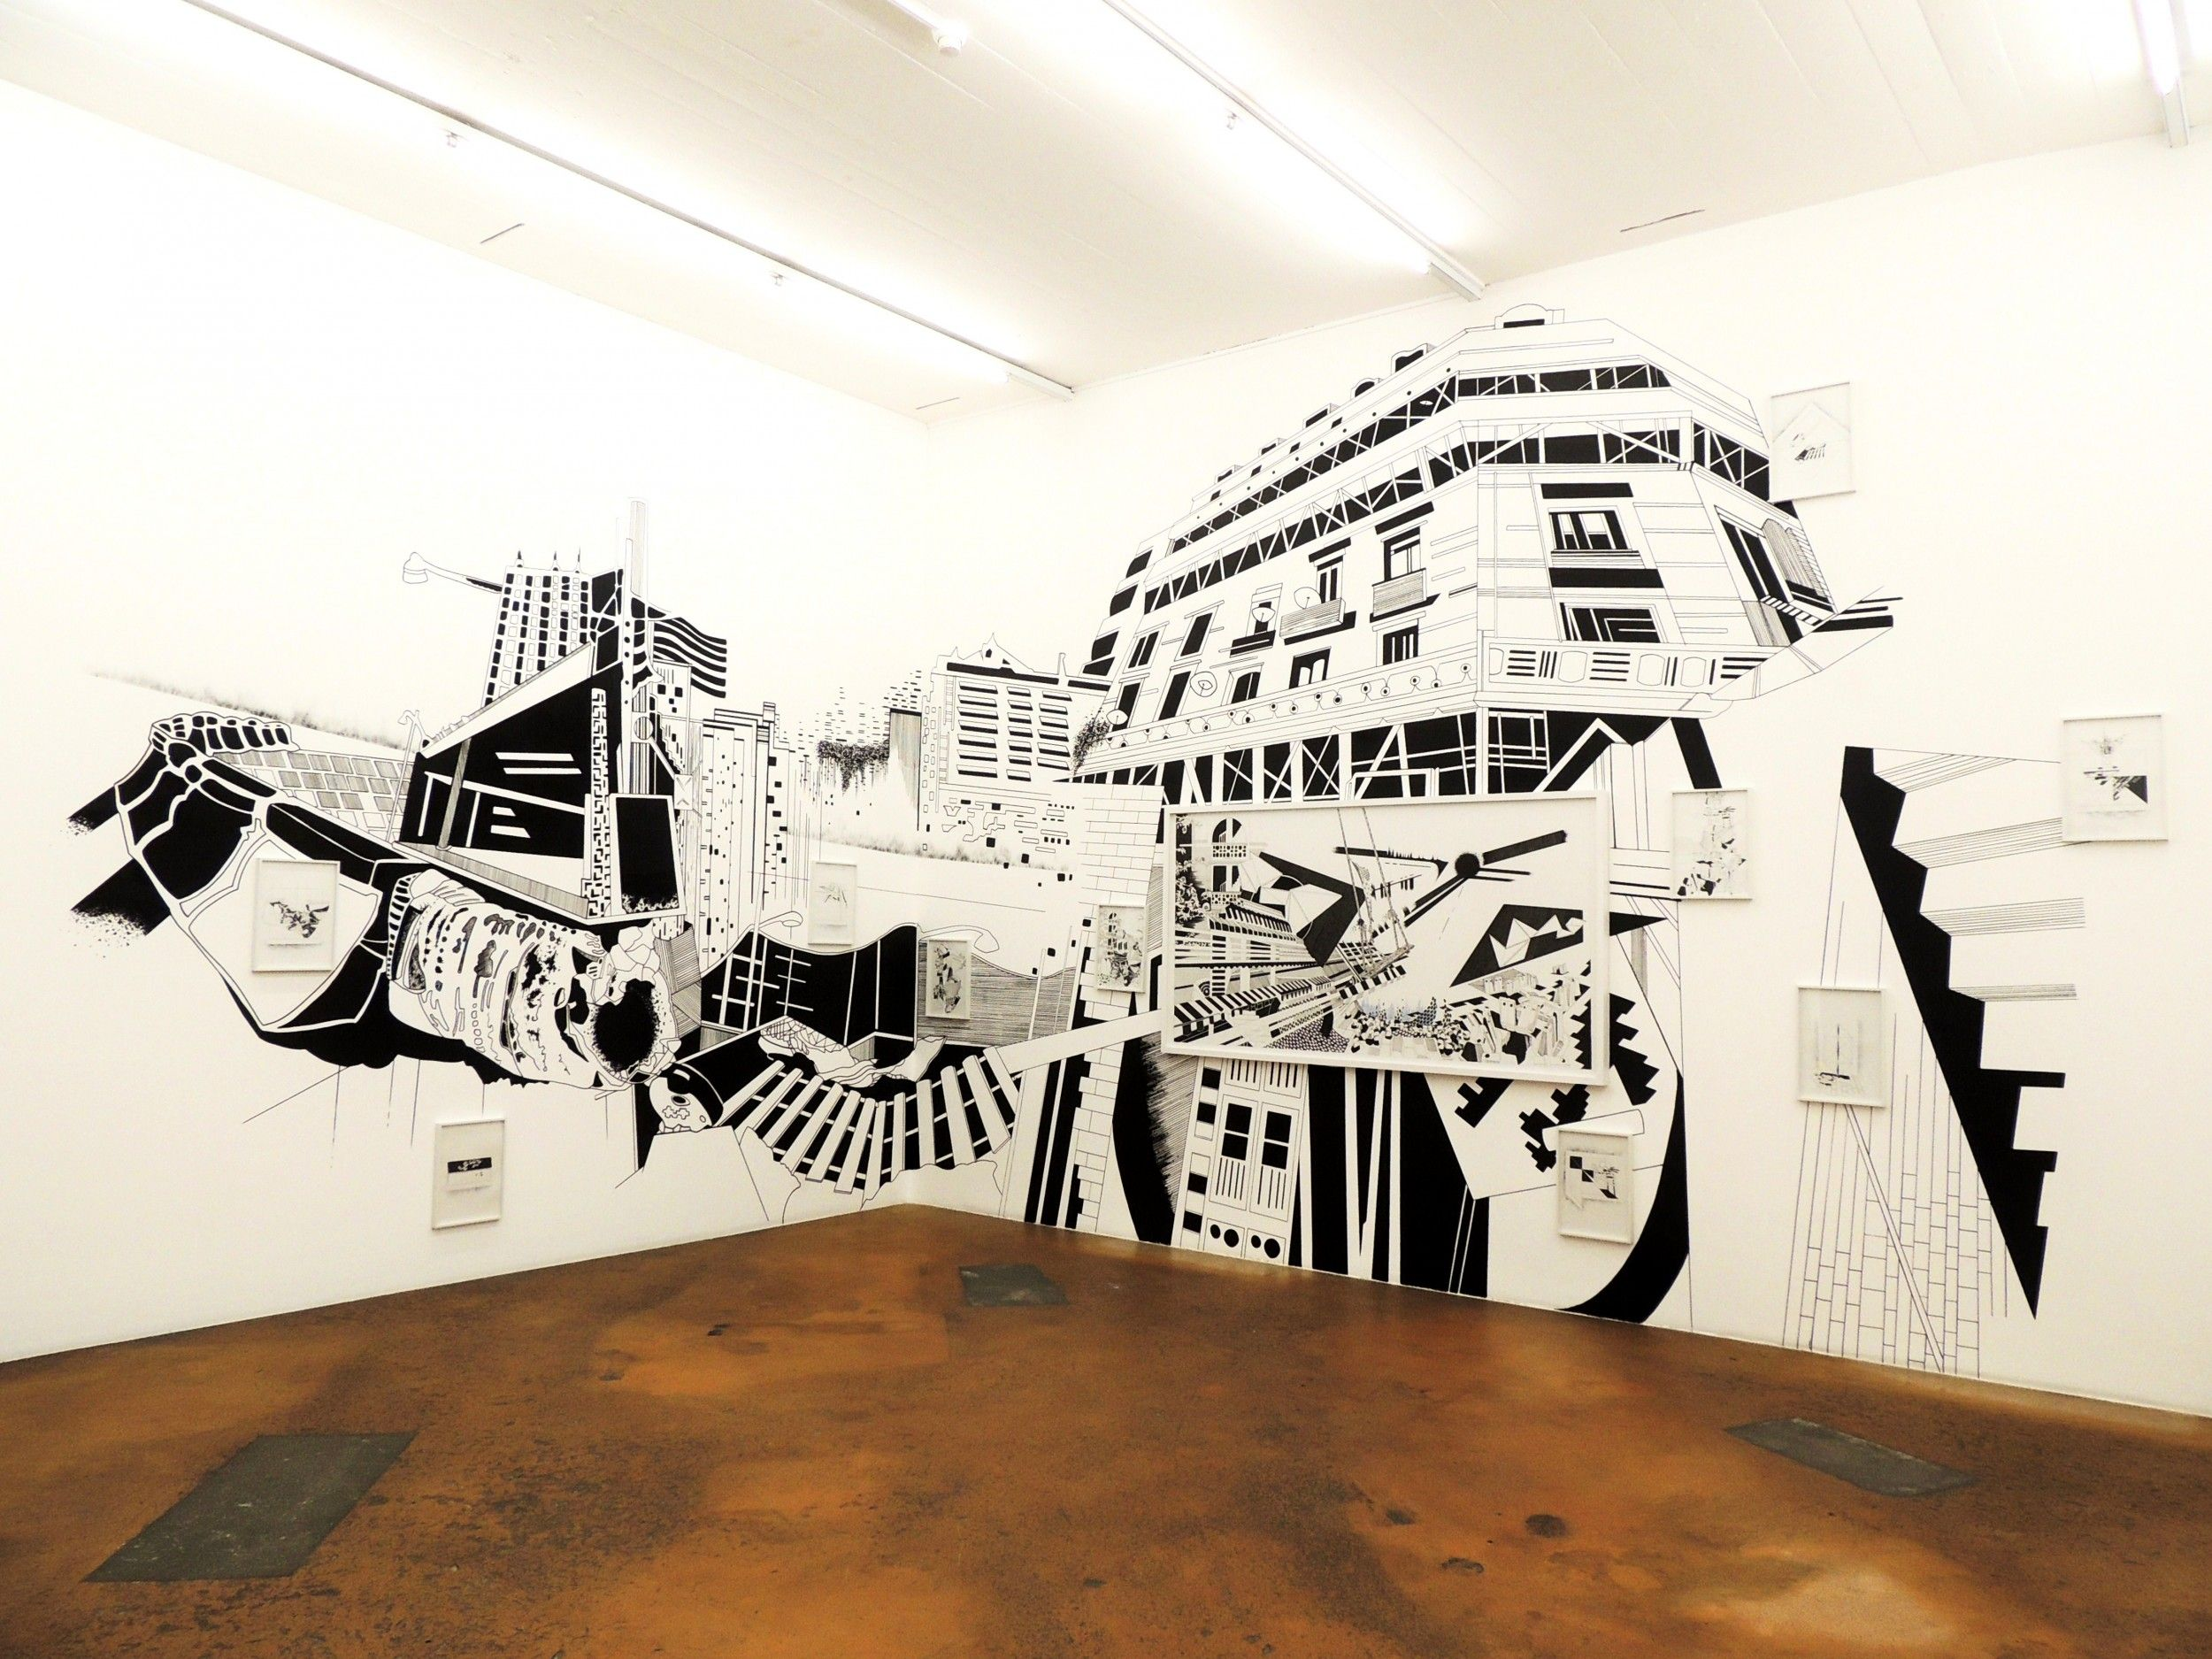 Exhibition: Back of the world, wall drawing, drawings on paper, Mamco  Genve - hriech chourouk